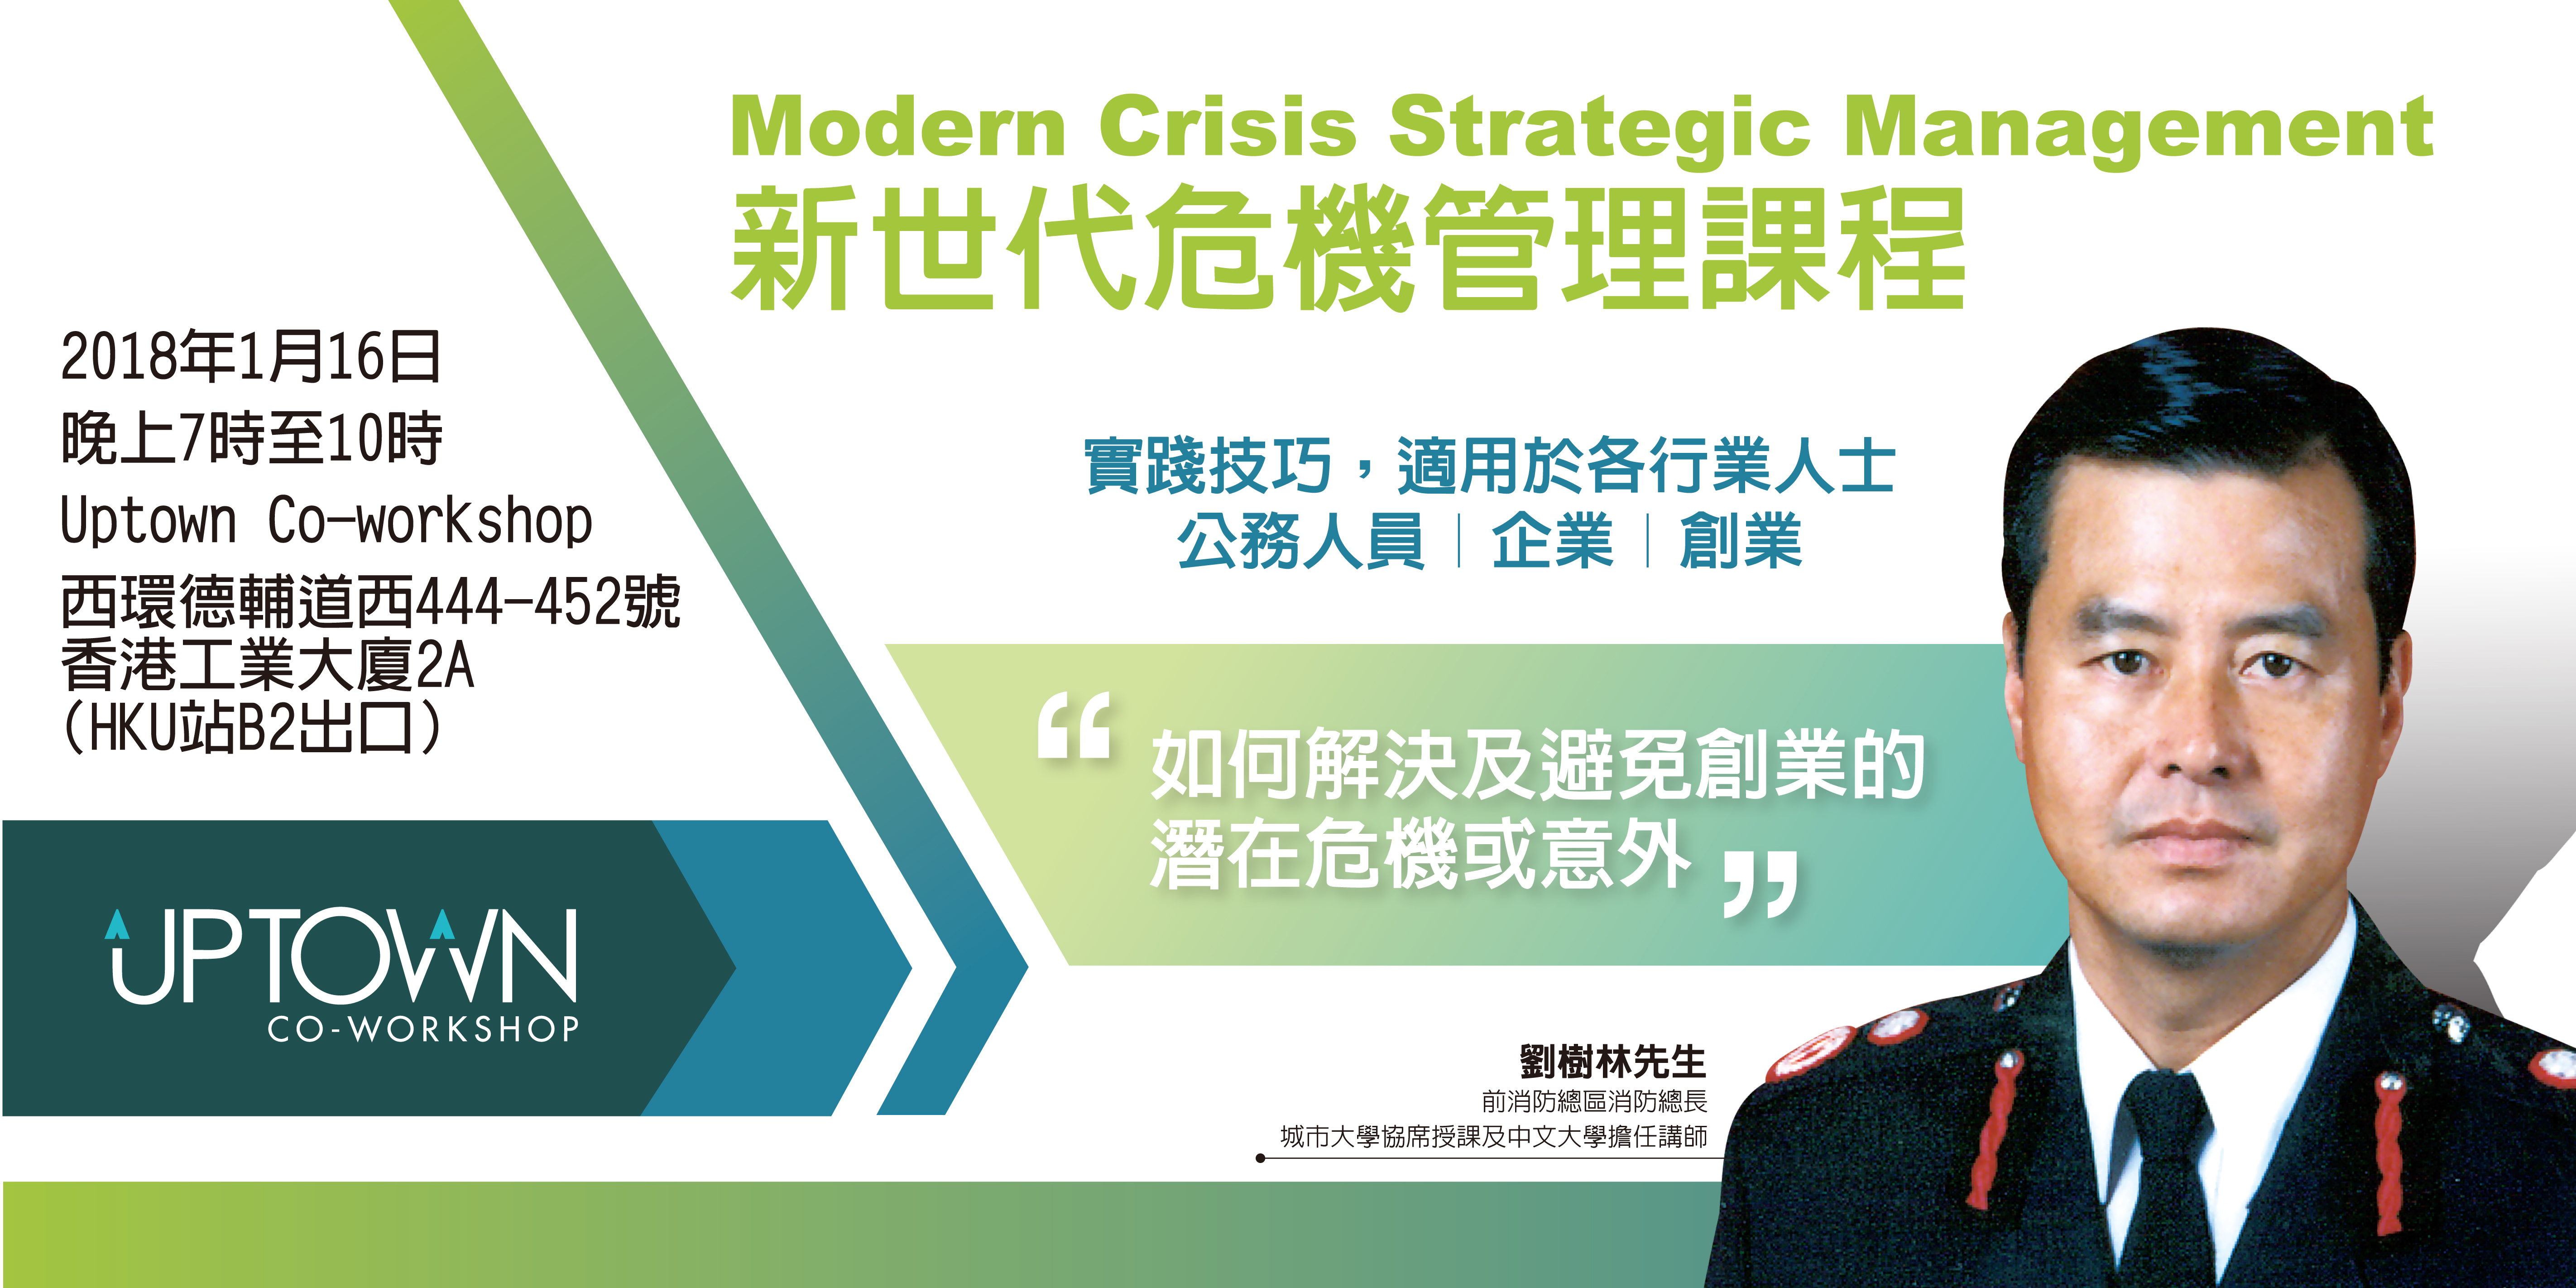 新世代危機管理課程 Modern Crisis Strategic Management